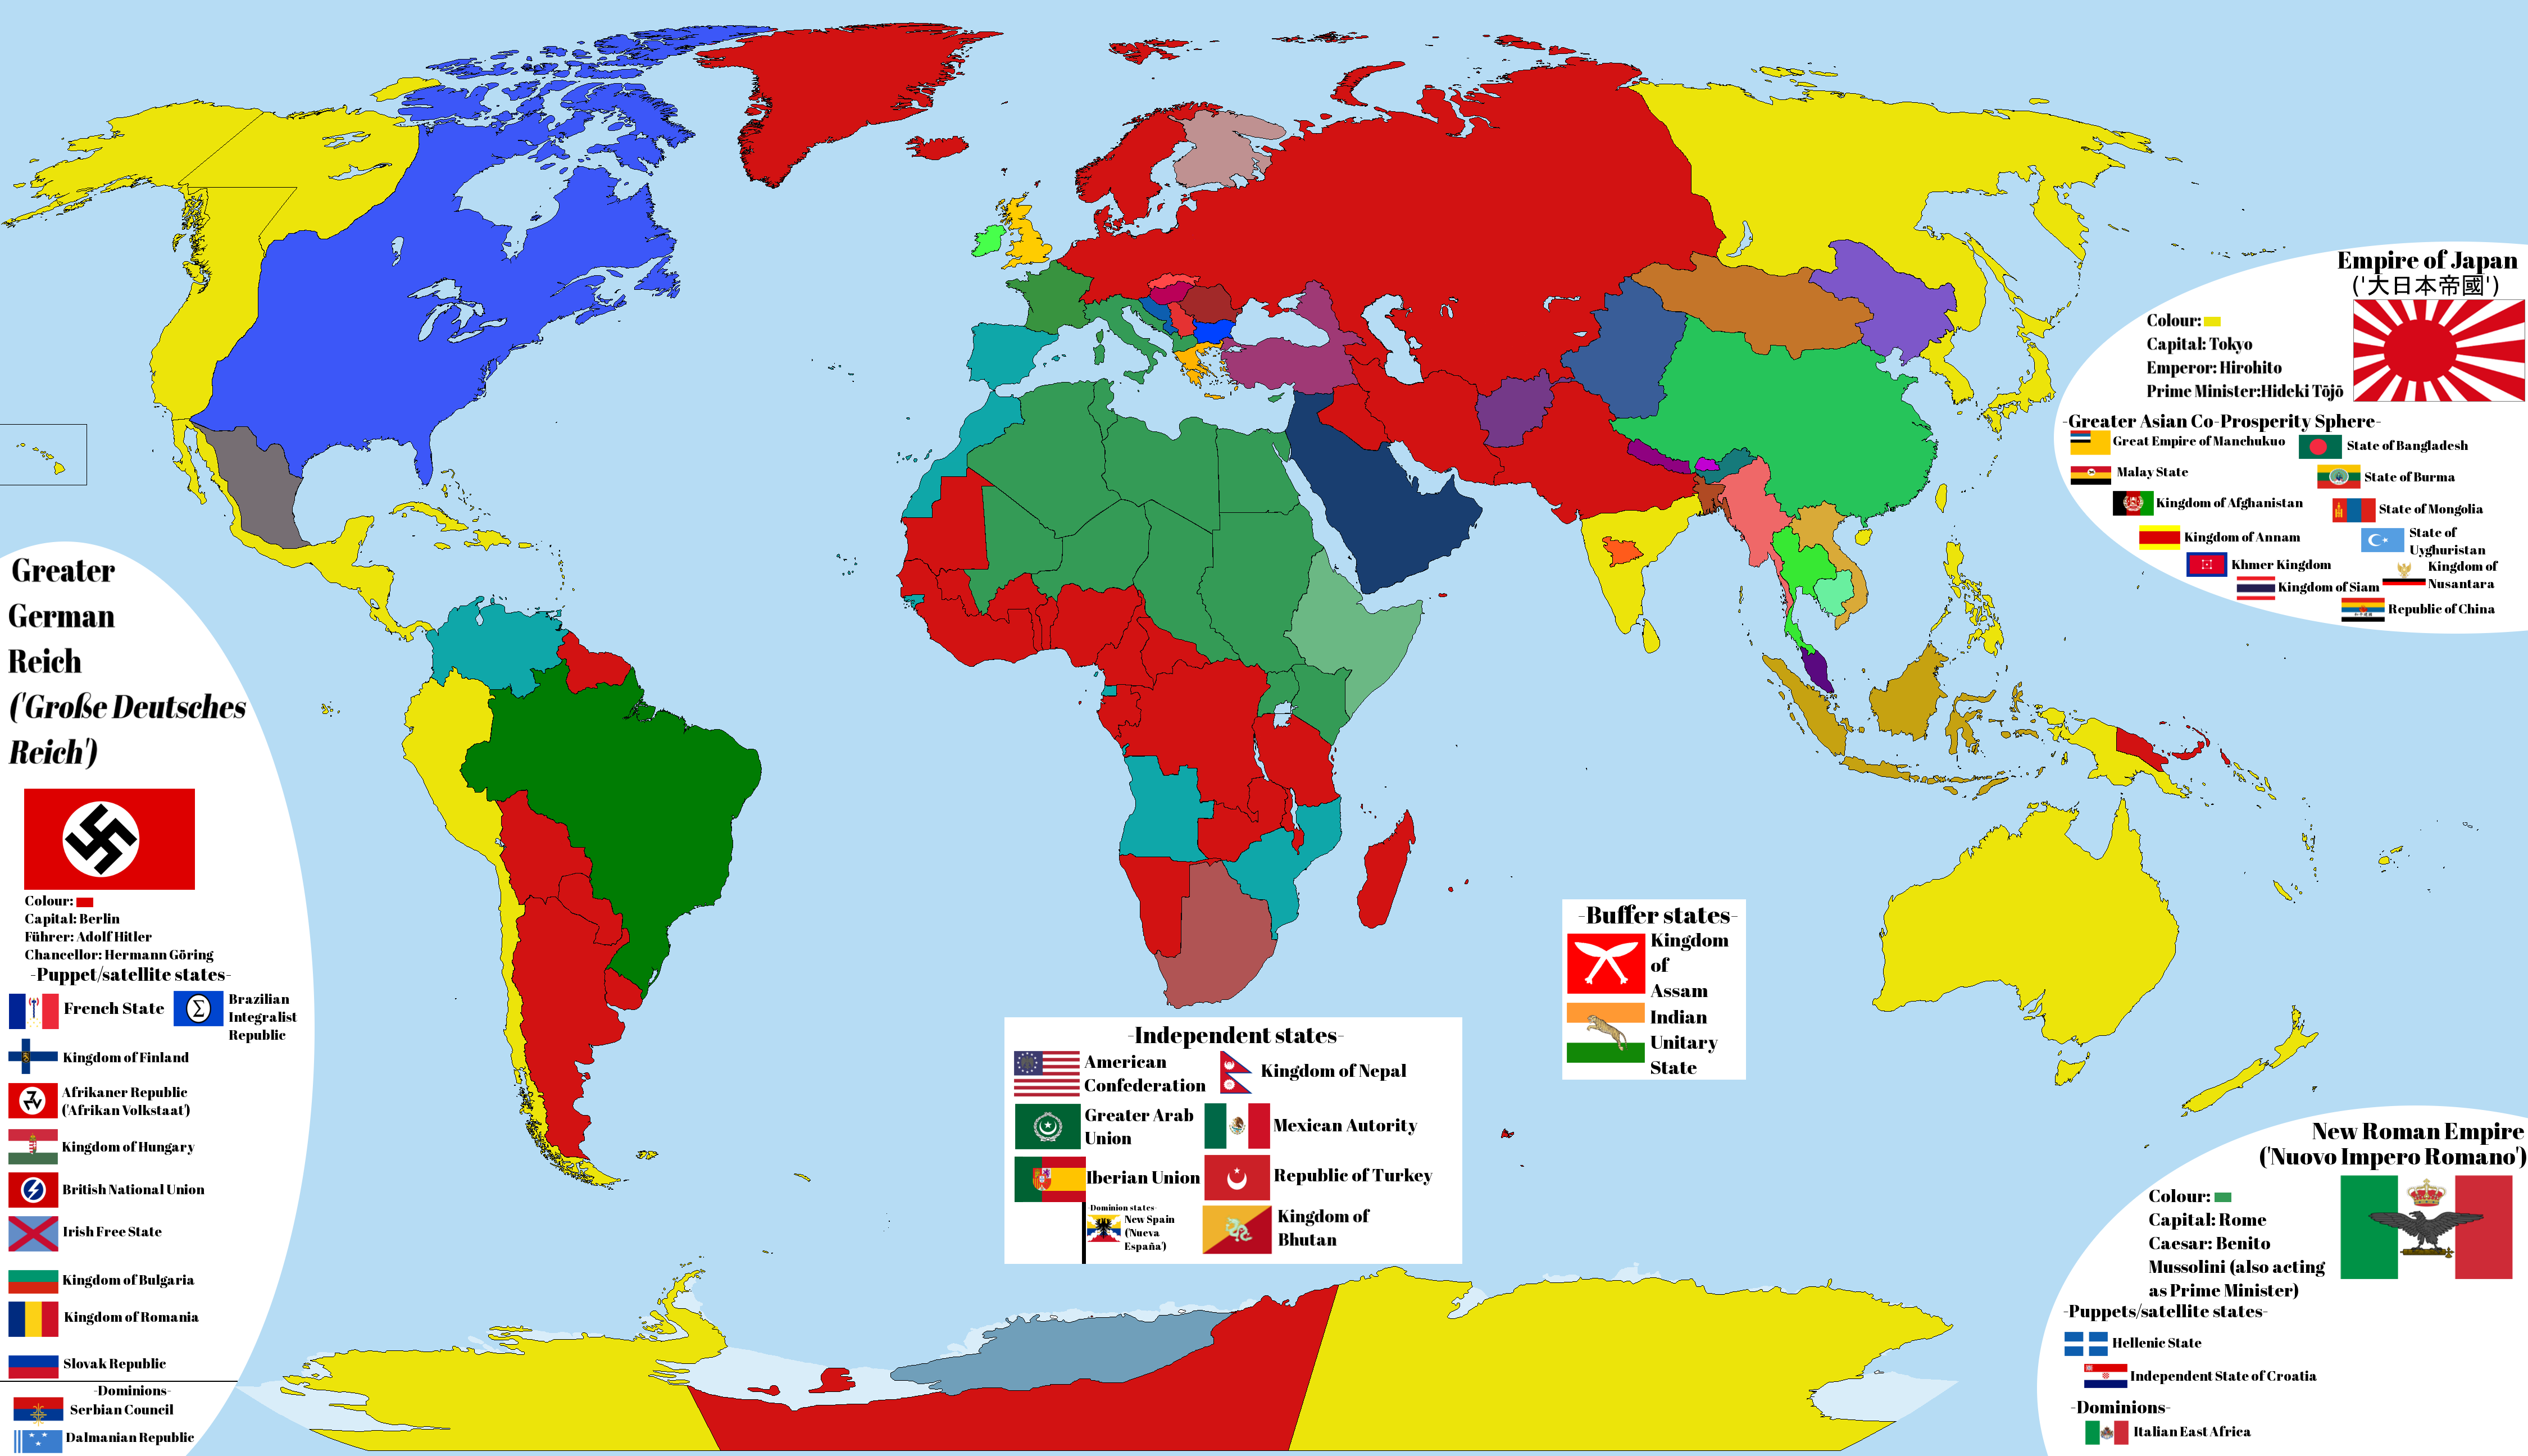 After The Fall Axis Victory In World War II By Readyus On DeviantArt - Germany map after ww2